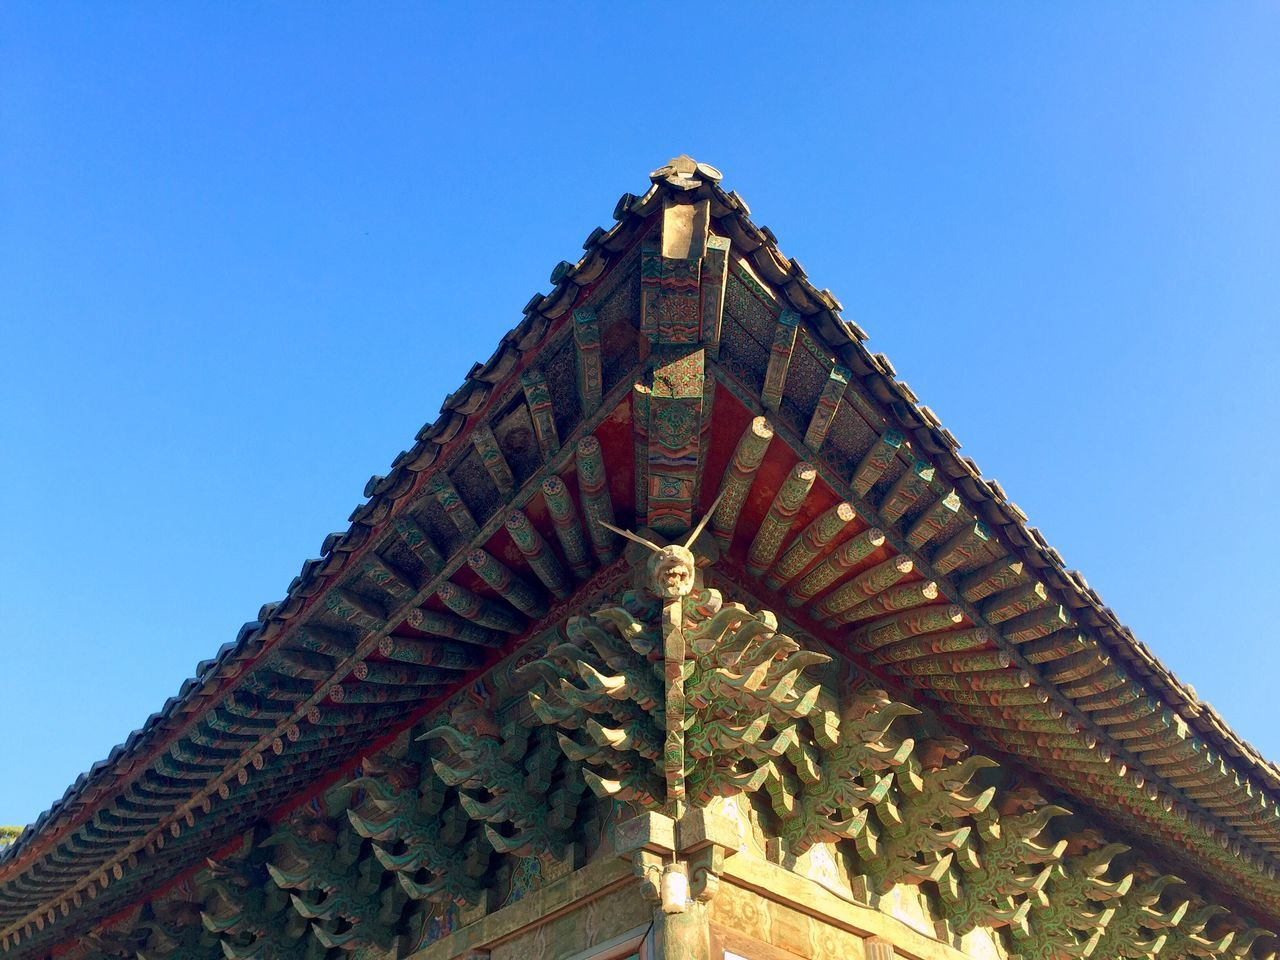 Taking Photos Korean Temple Traditional Eaves Blue Sky IPhoneography